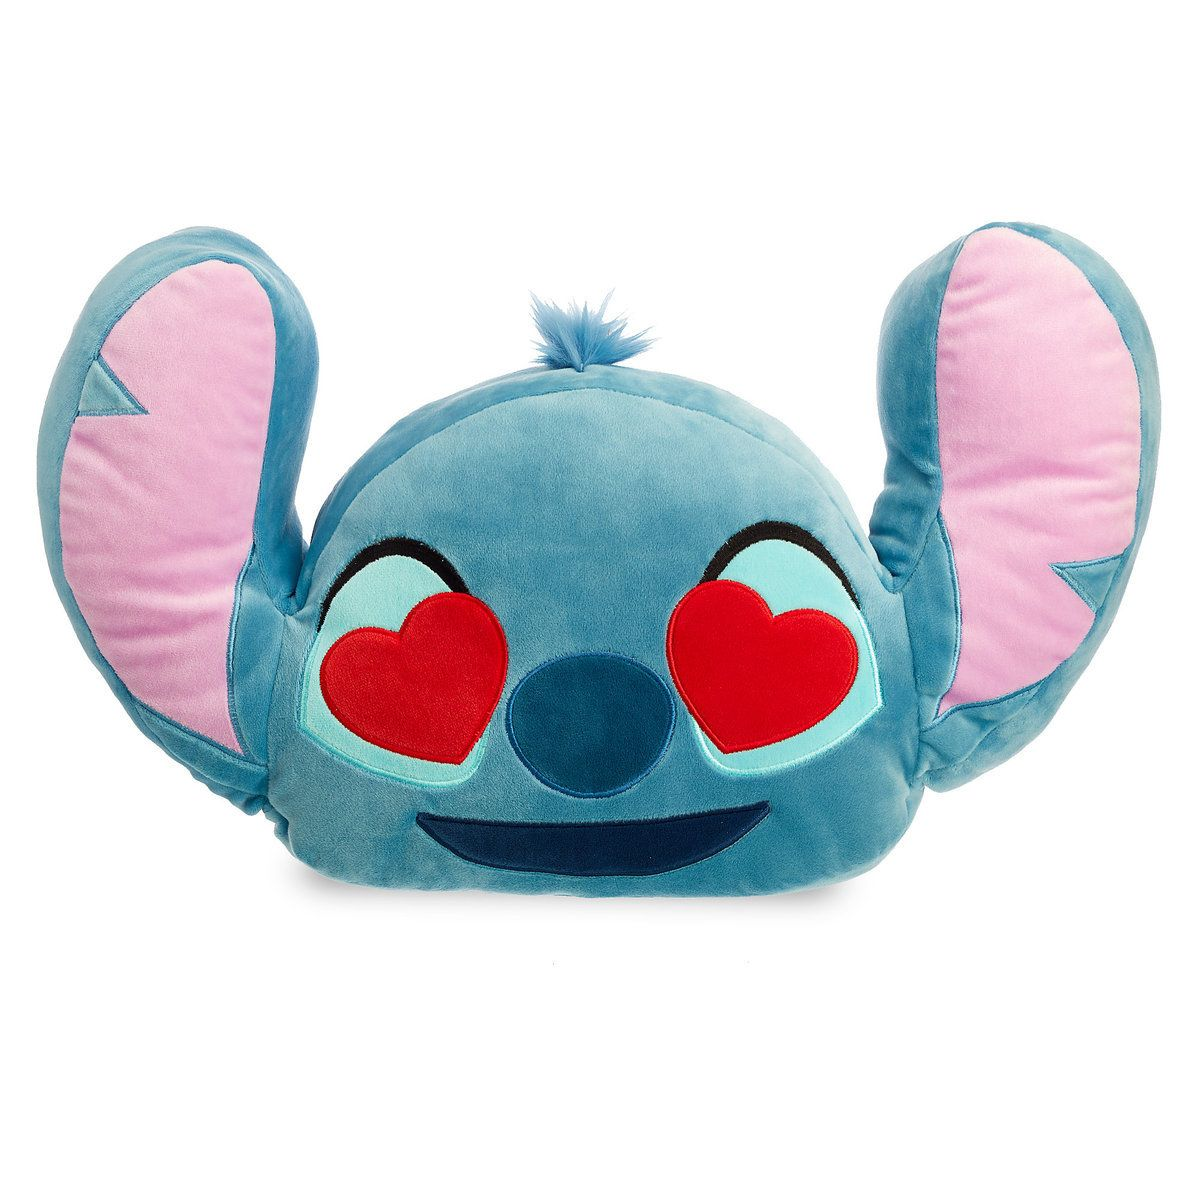 kids DISNEY ears Lilo /& stitch Headband Costume large stitch 3d ears soft plush